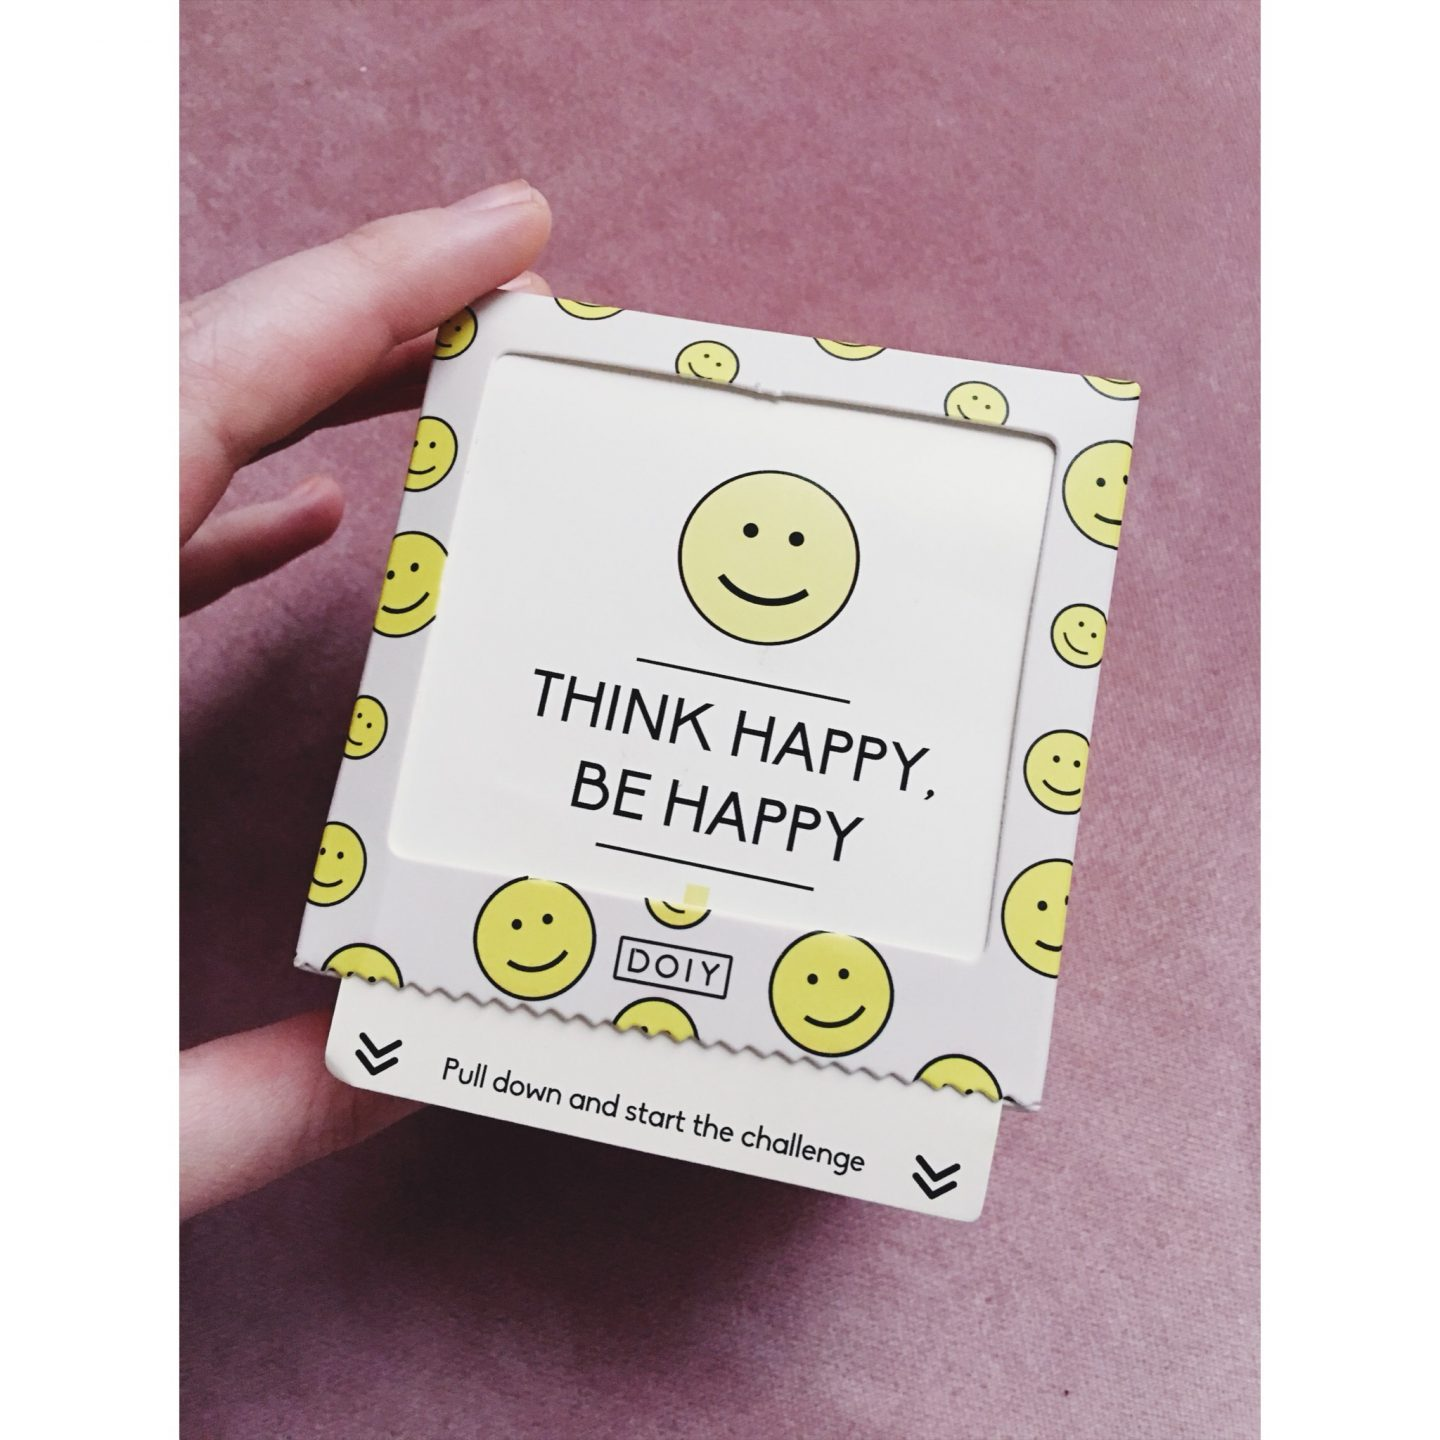 Challenge | Think happy, be happy.